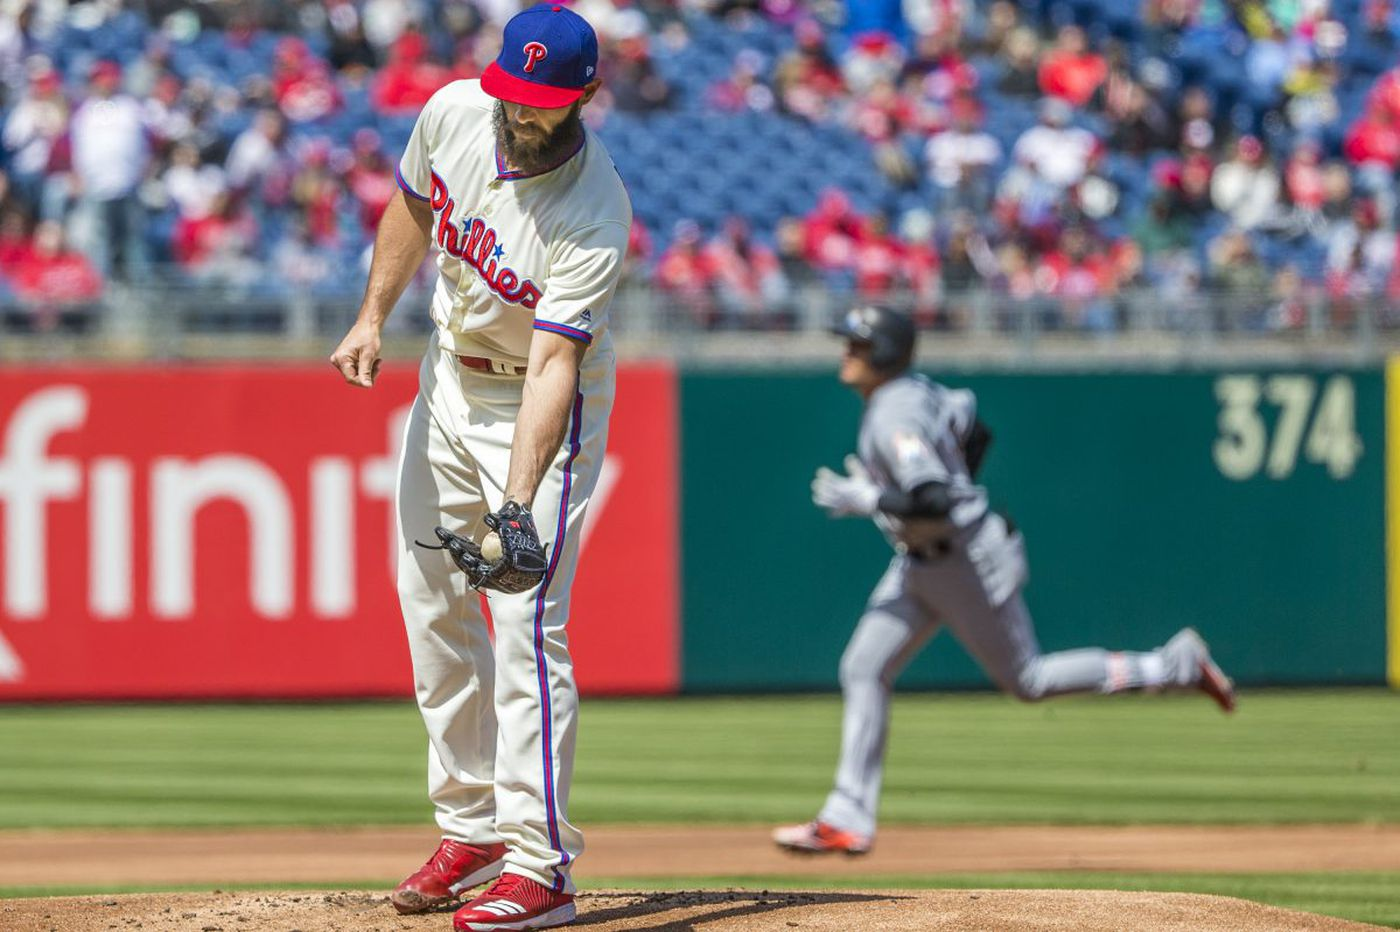 Phillies fall to Marlins in Jake Arrieta's debut